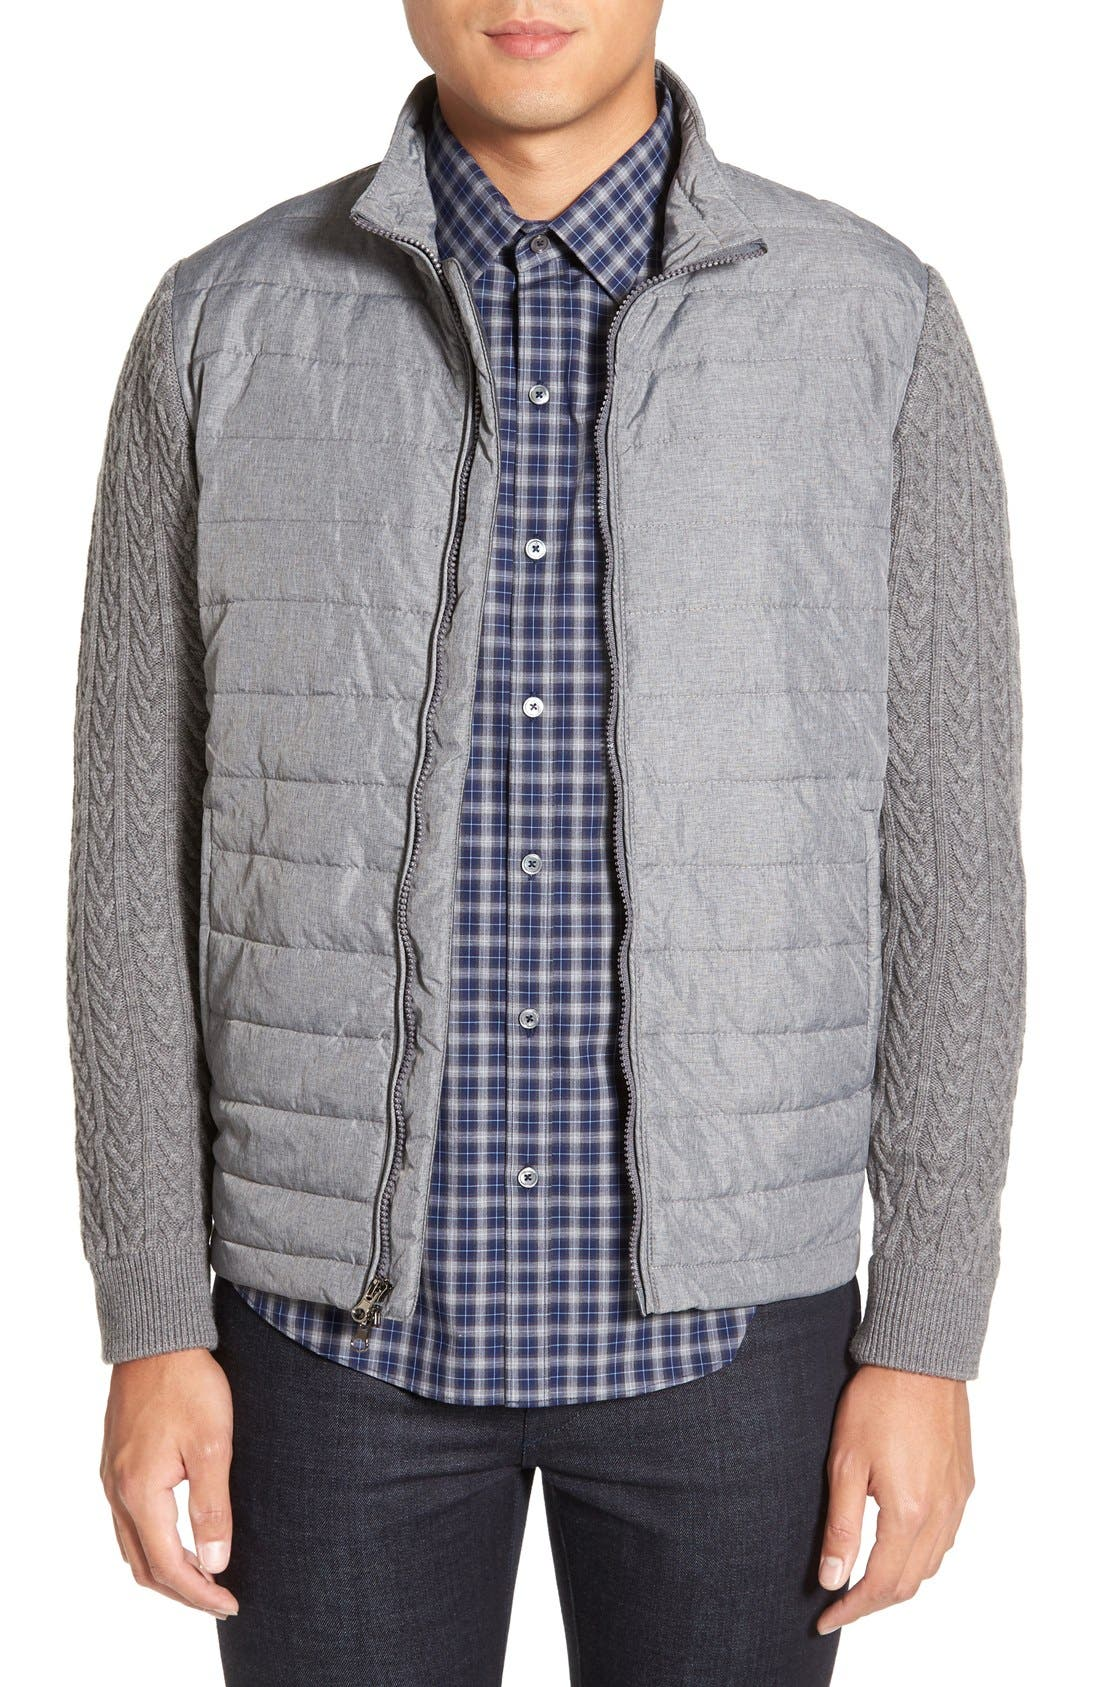 Alternate Image 1 Selected - Zachary Prell 'Beacon' Trim Fit Quilted Cable Knit Zip Sweater